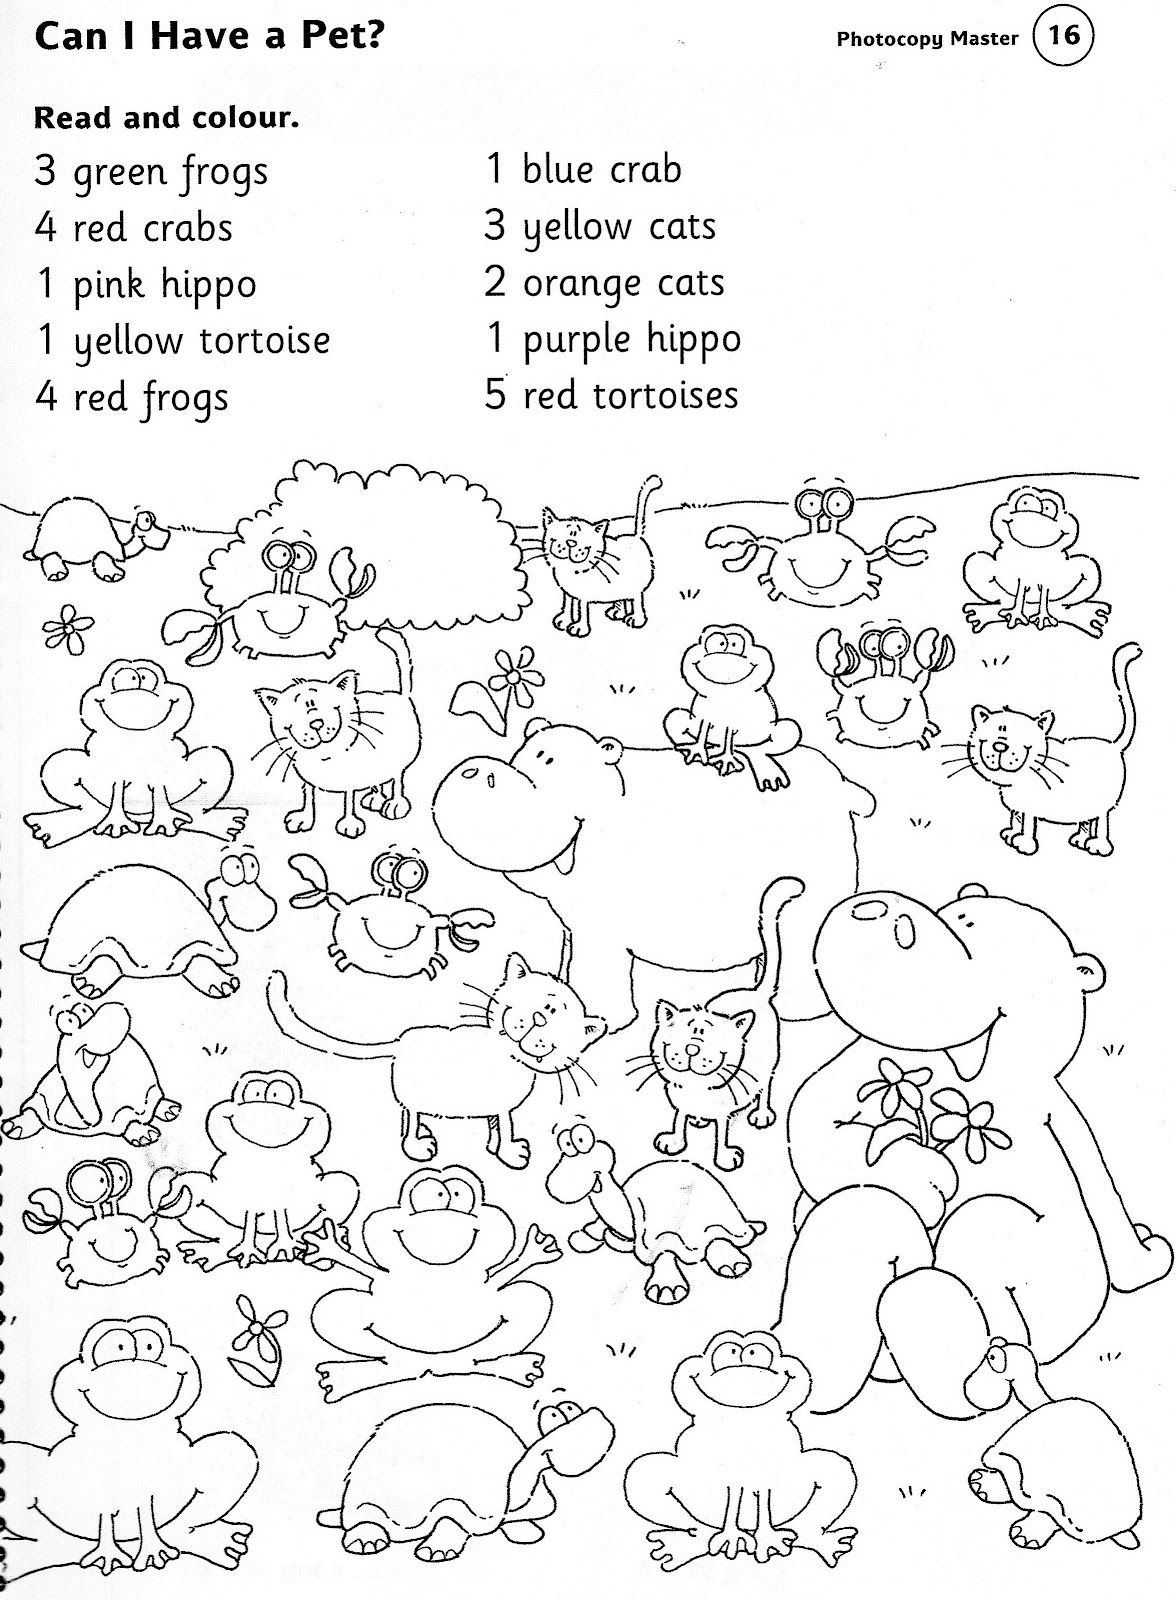 worksheet Color Red Worksheets For Preschool if they have done number colour and animals change the english writing to french vocabulary worksheetskids